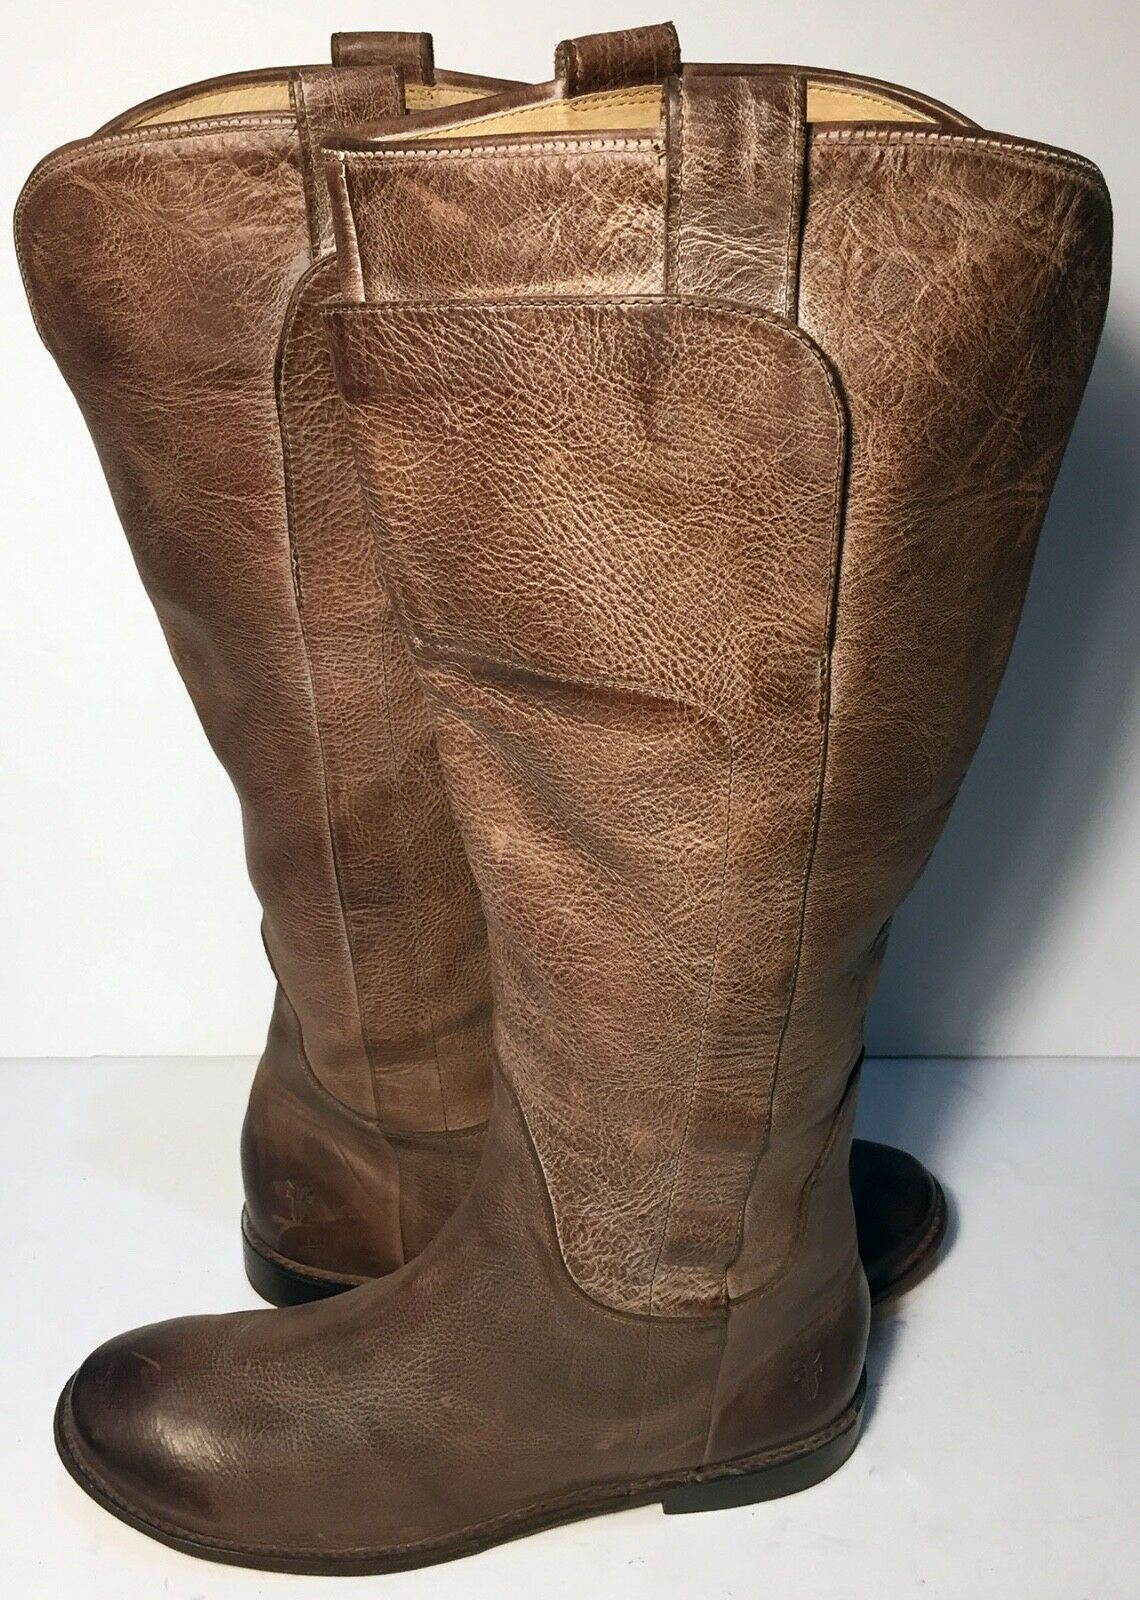 Frye 77534 Paige Tall Riding Brown Leather Motorcycle Boots Women's Size 9.5